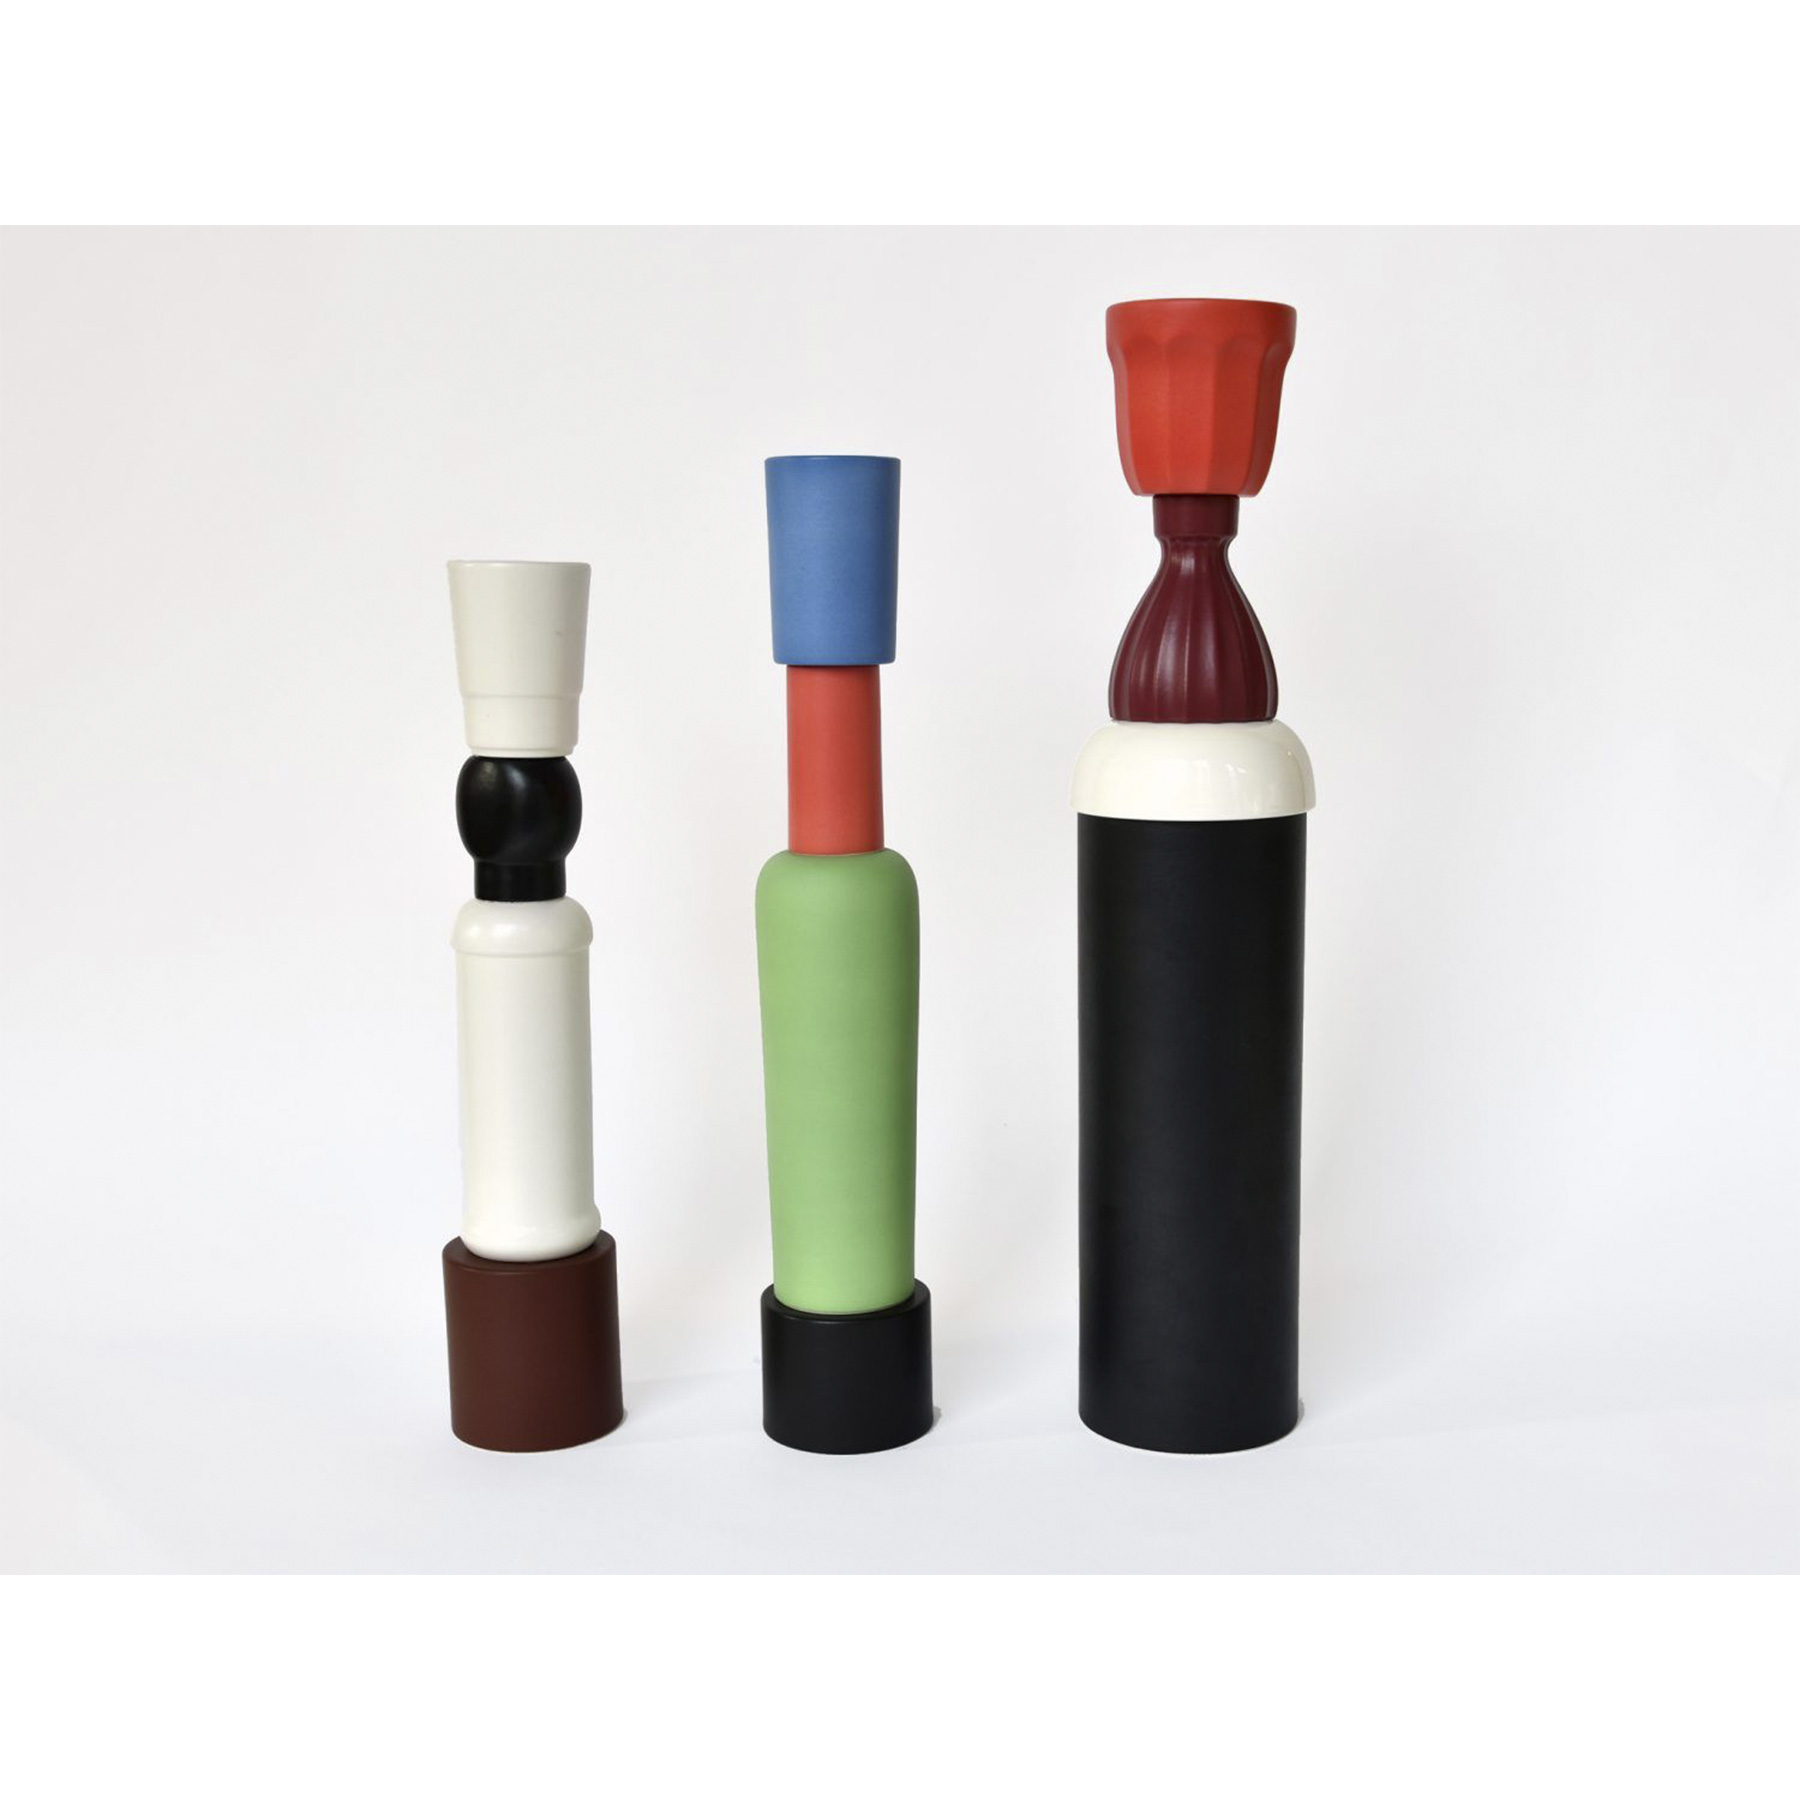 Tall Multicoloured Vase - Vase Hand-turned with elements cast in white clay. Matt black, green, red and light blue glaze. Replica in 2016, this elegant vase by Natalie Du Pasquier was designed for Bitossi in 2005 and it is part of a limited series of 299 pieces. Its geometric shape is enhanced by the use of colours to highlight each part. The effect is a multicoloured, striking object with a modern allure.